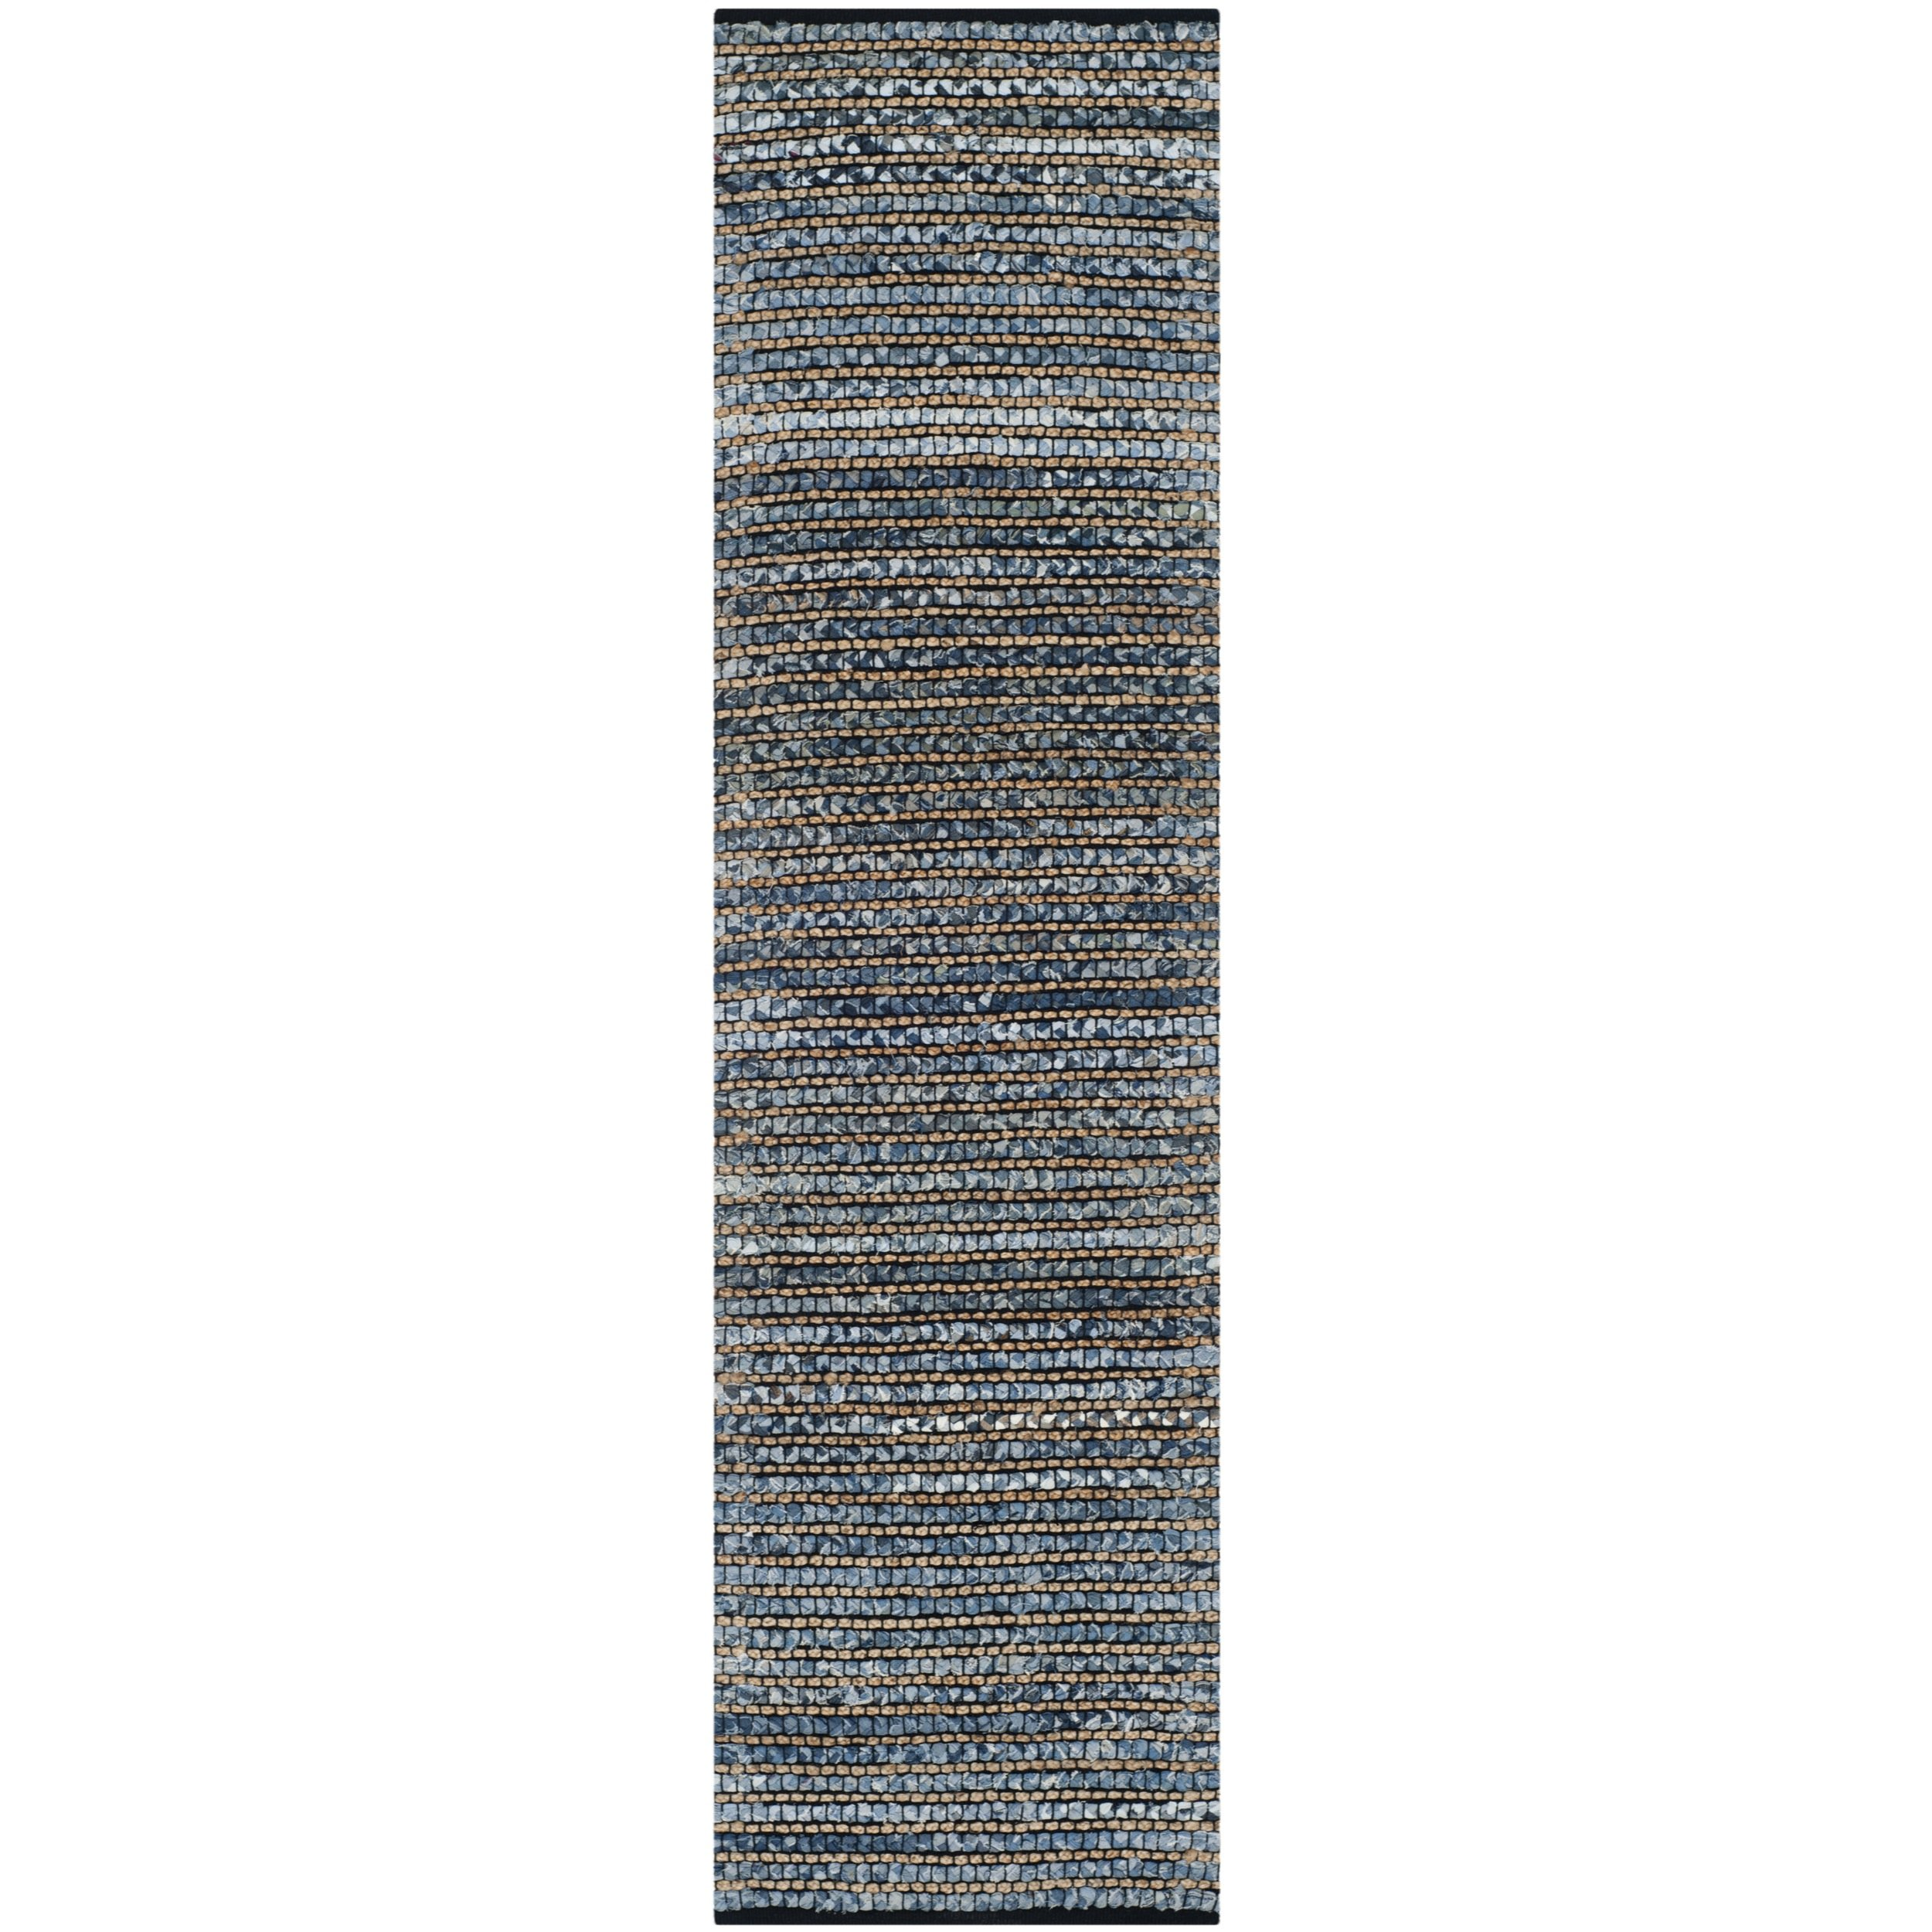 Safavieh Cape Cod Collection CAP365A Hand Woven Blue Jute Runner (2'3'' x 6') by Safavieh (Image #3)